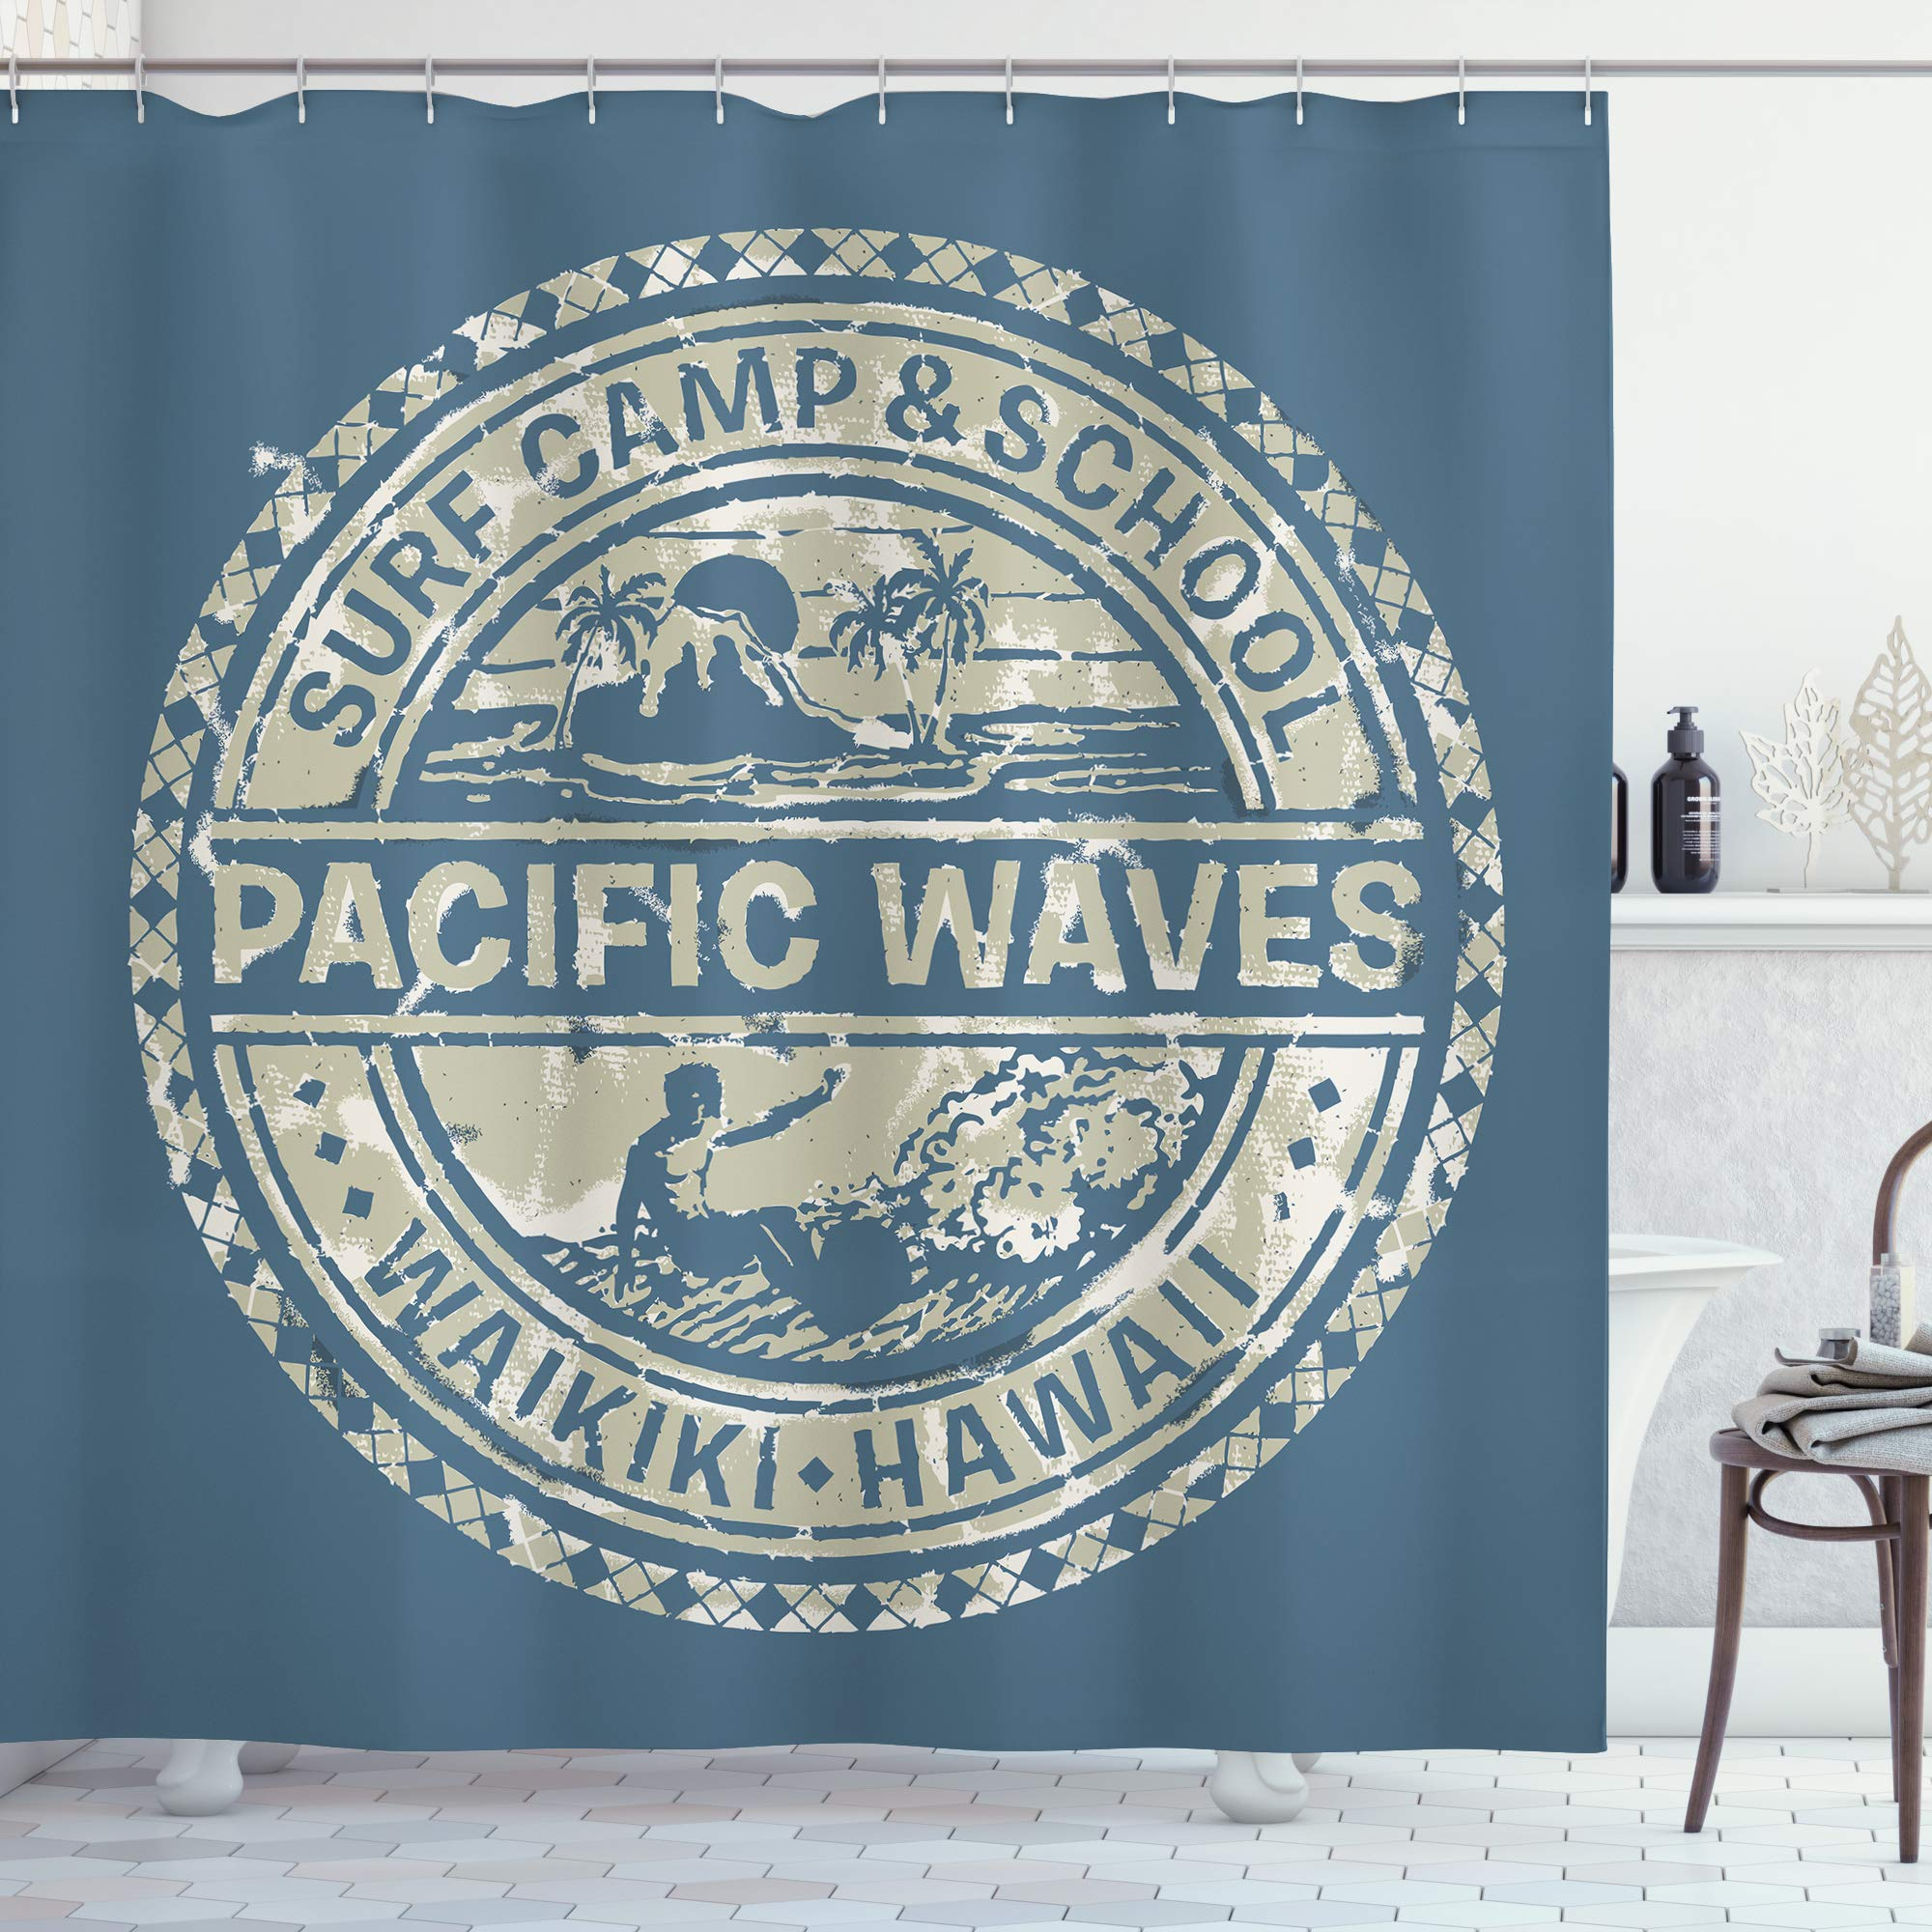 """Ambesonne Modern Shower Curtain, Pacific Waves Surf Camp and School Hawaii Logo Motif with Effects Design, Cloth Fabric Bathroom Decor Set with Hooks, 70"""" Long, Blue Khaki"""